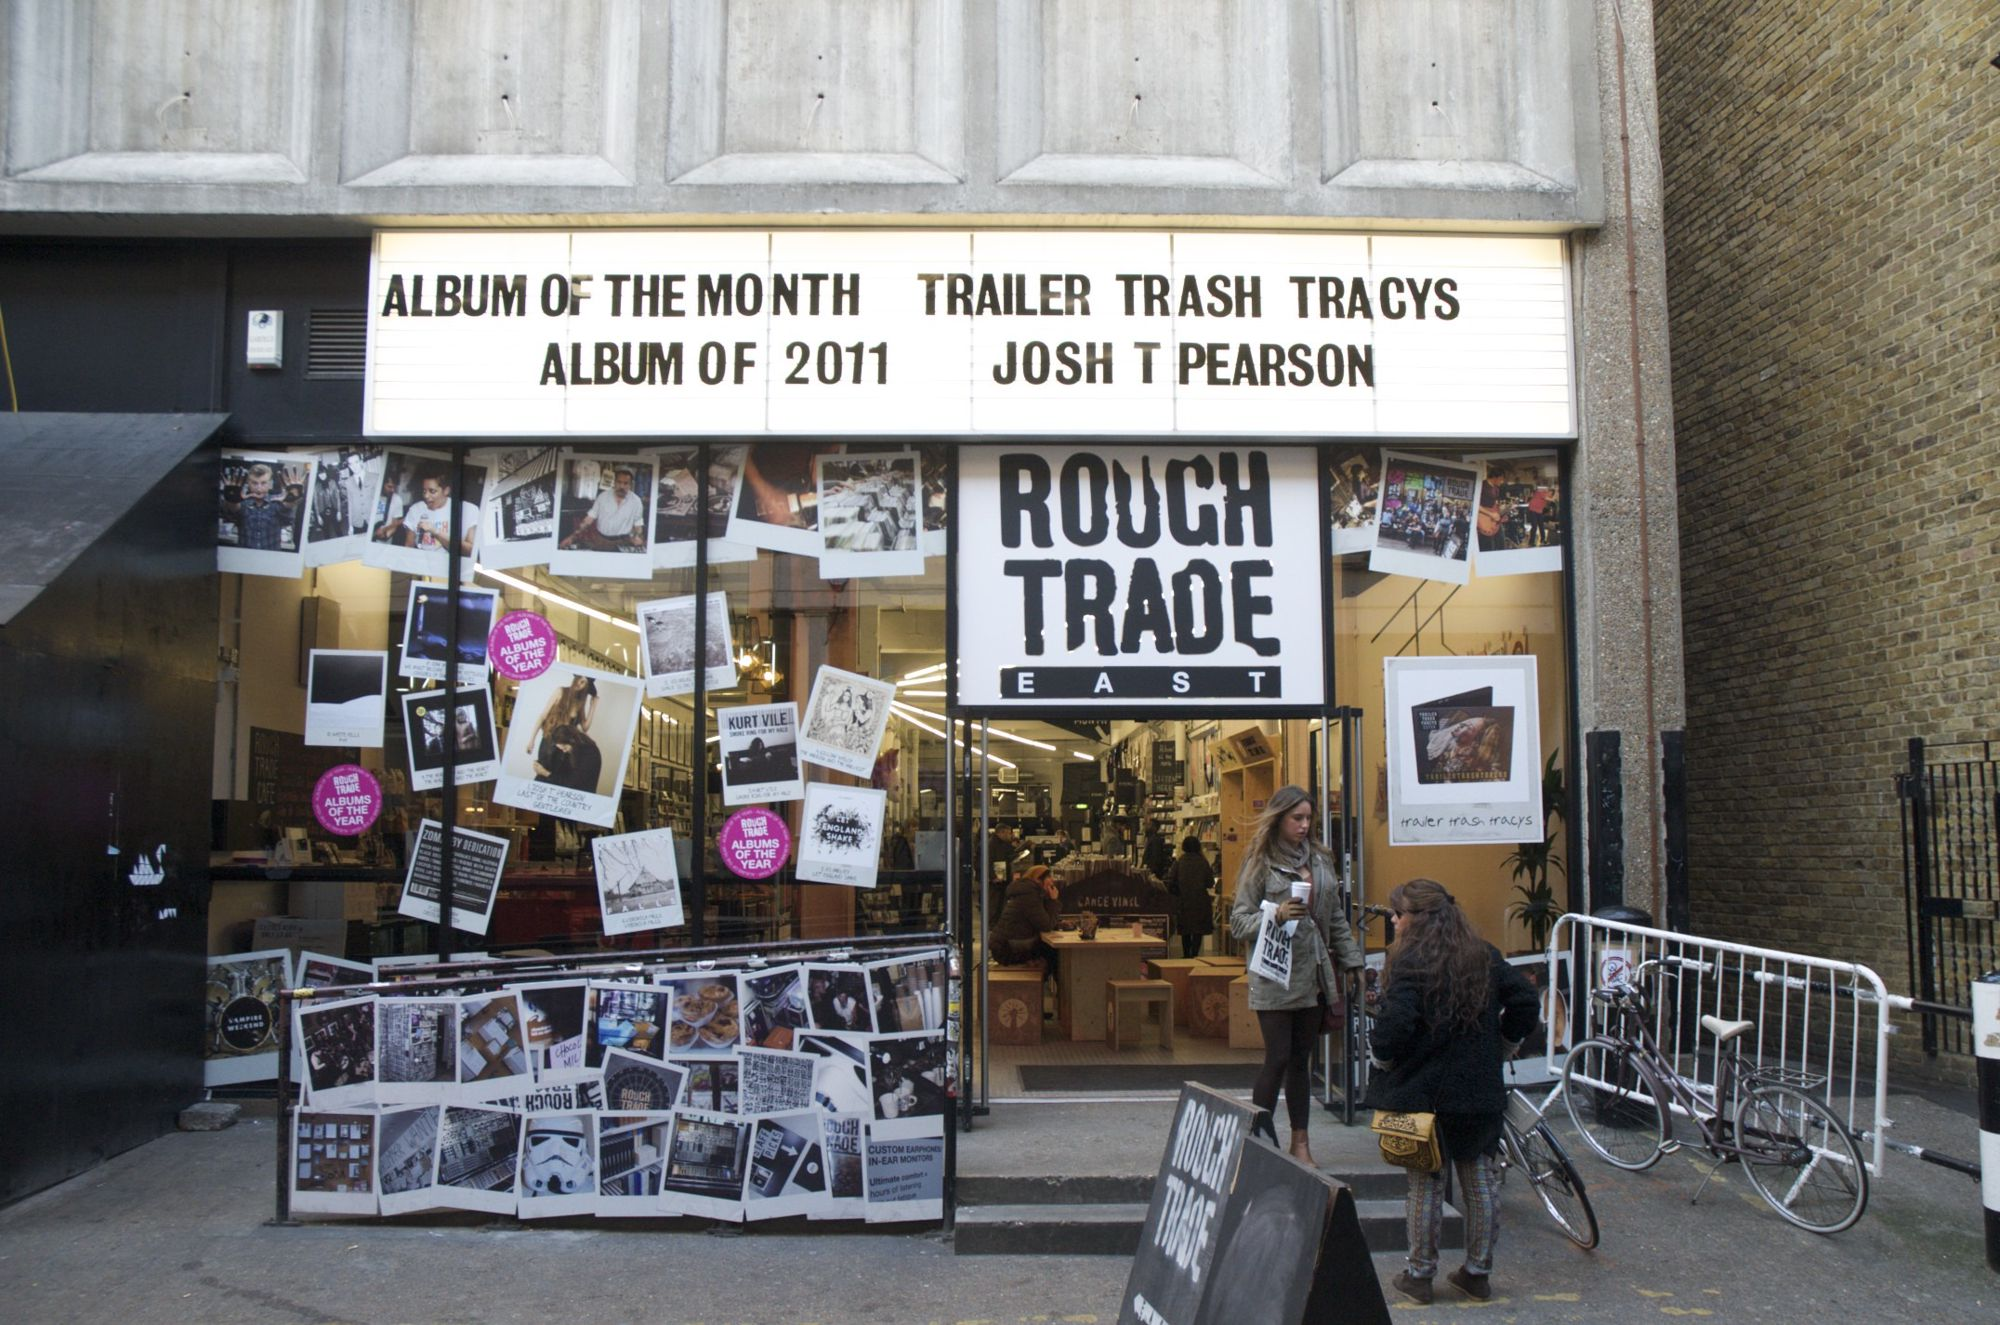 Rough Trade close holiday gallery next holiday image previous holiday image Rough Trade Old Truman Brewery, 91 Brick Lane, Spitalfields, London E1 6QL Website Located just off Brick Lane, the independent Rough Trade music store is a haven for ...